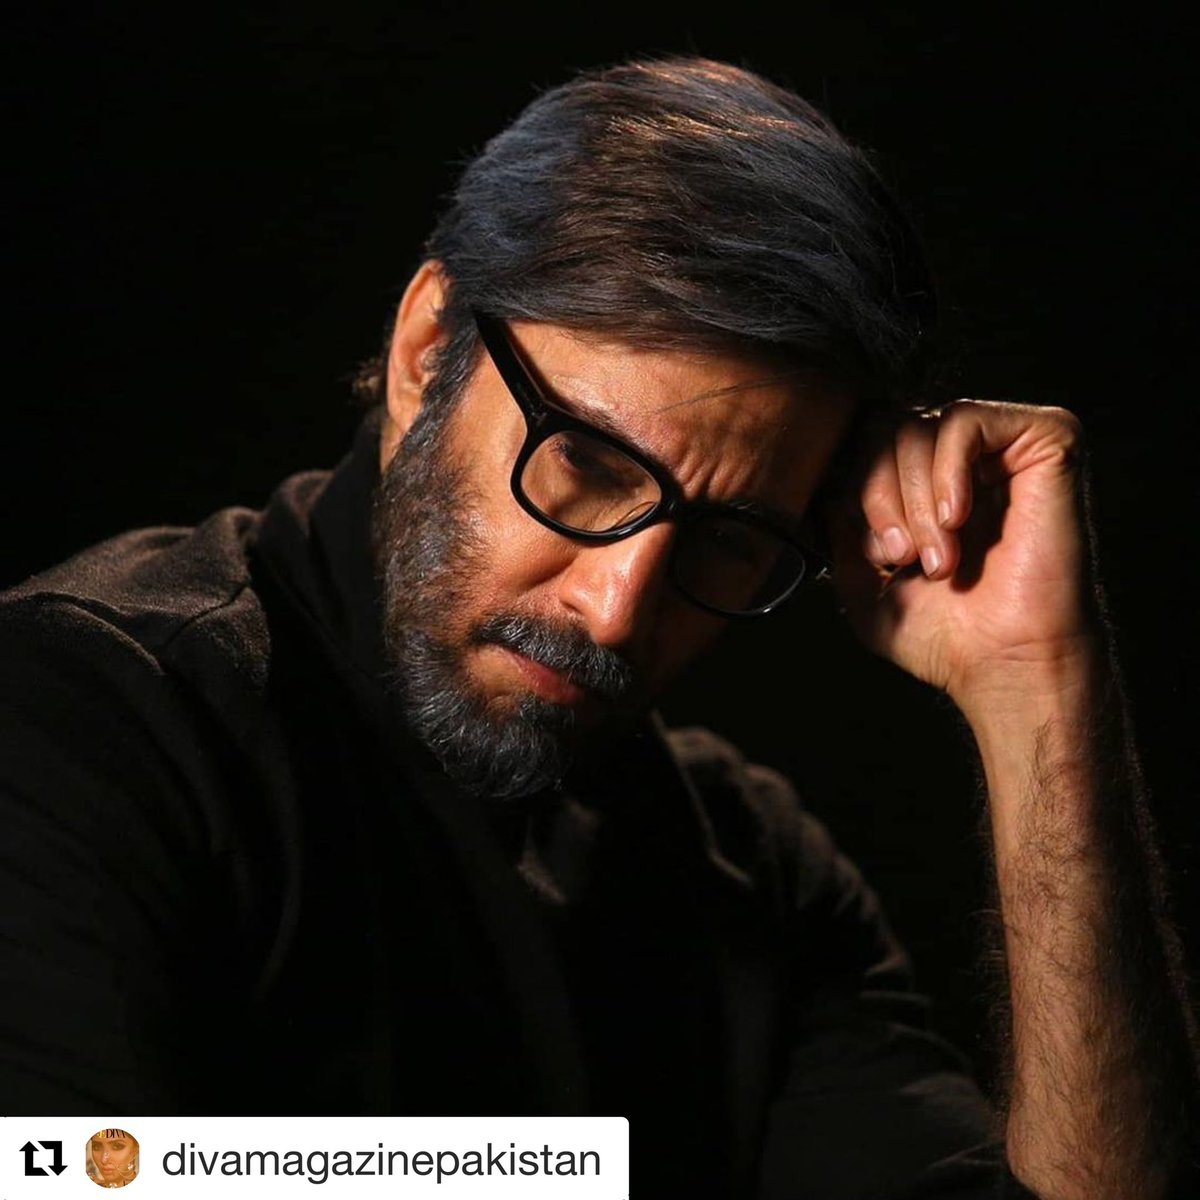 #Repost @divamagazinepakistan with @get_repost ・・・ Nothing we do can change our past but everything we do changes our future.  The lurking darkness in #AijazAslam's new shots have us excited. 😍😳♥️  #FutureImperfect #KamranJawaid #MKJ #ZaidAziz #VoxVision #Dark #Supernatural